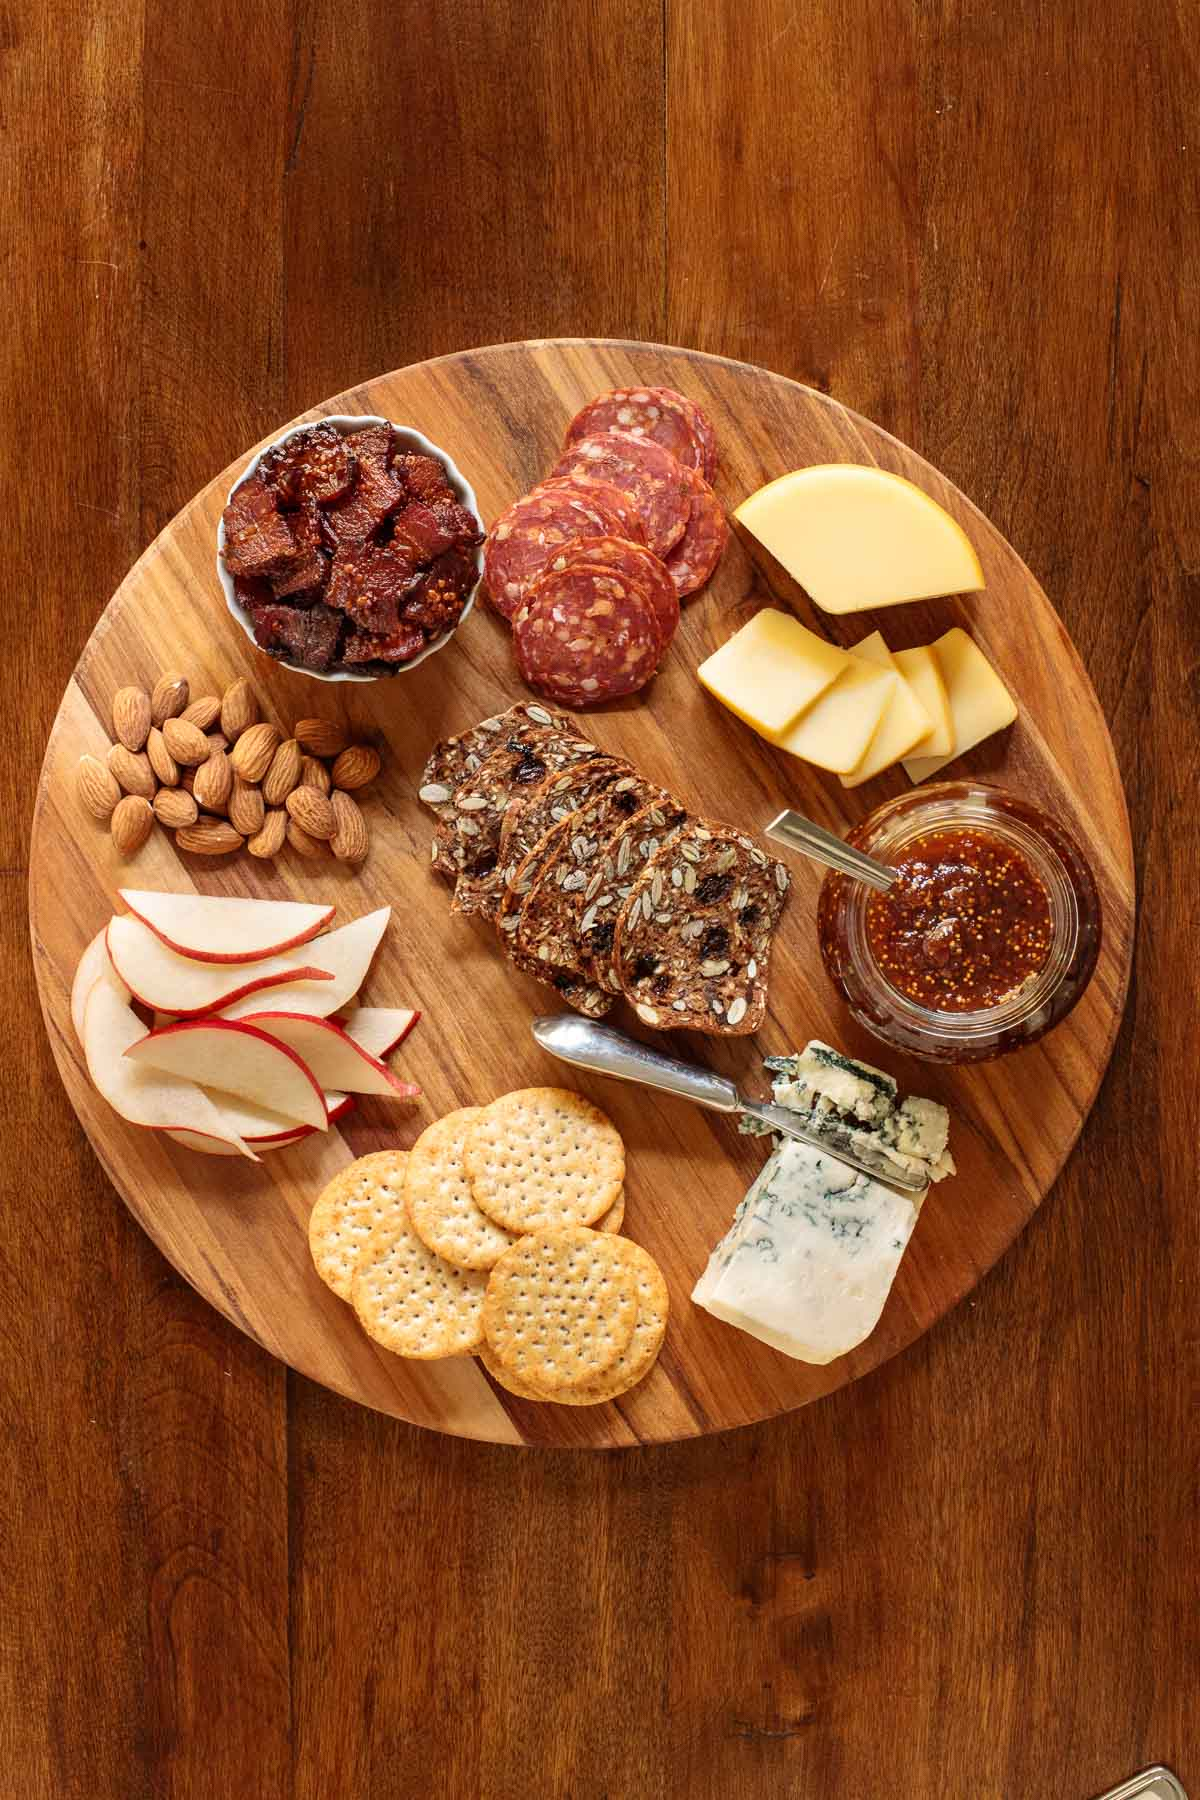 Overhead photo of a cheese tray featuring Maple Mustard Candied Bacon along with various cheeses, crackers, almonds, sliced apples and fig jam.